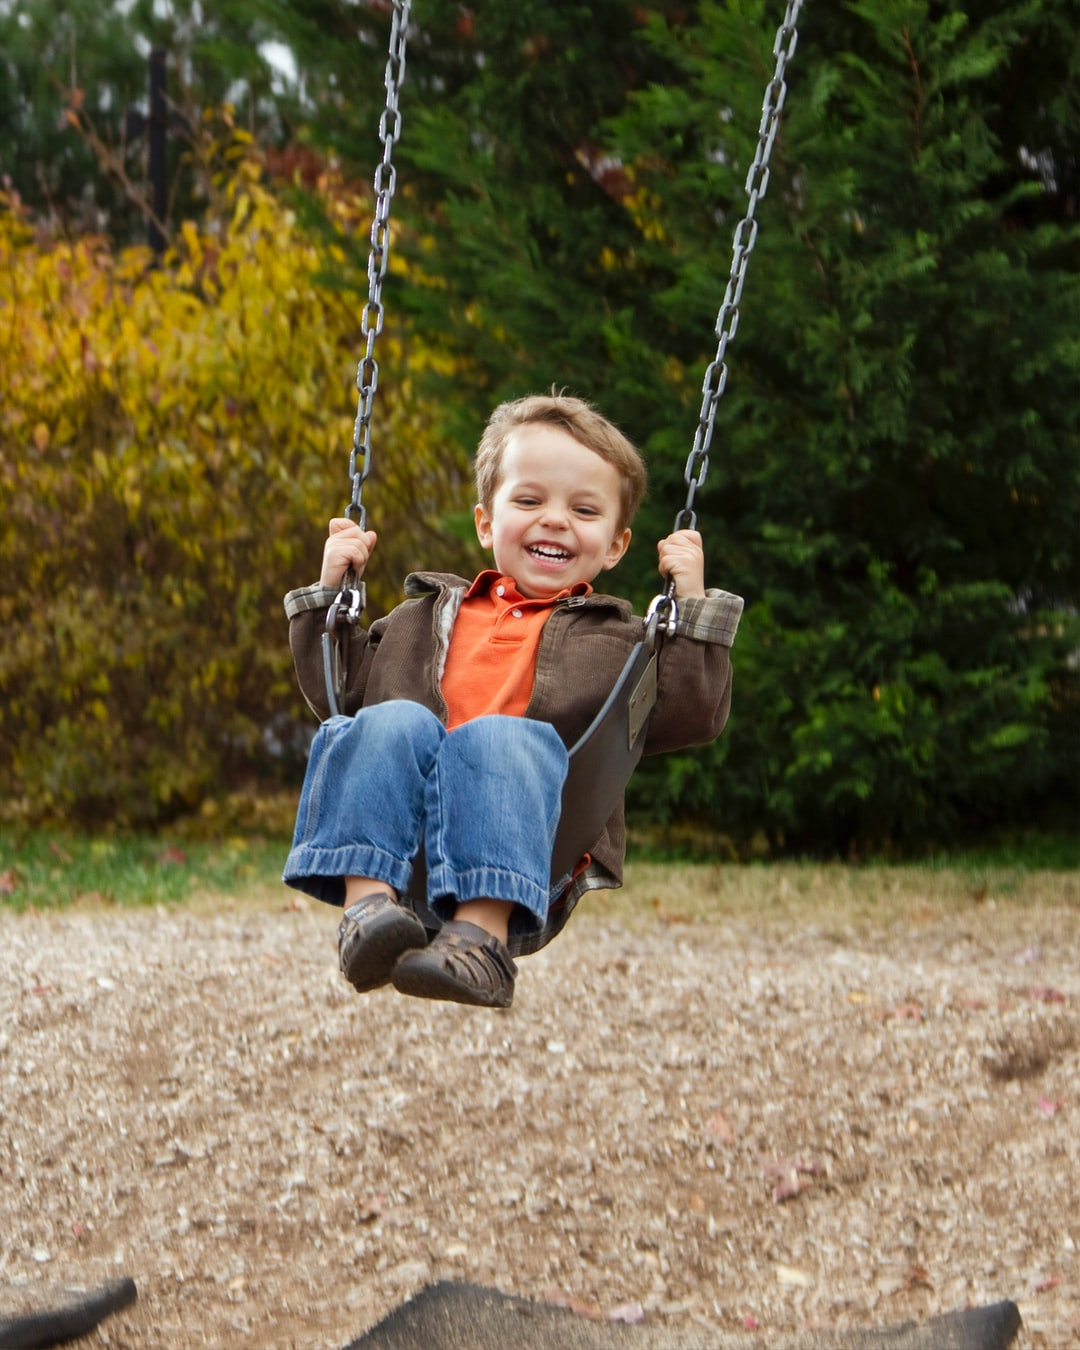 A Caucasian boy on a swing. Photographer Daniel Sone